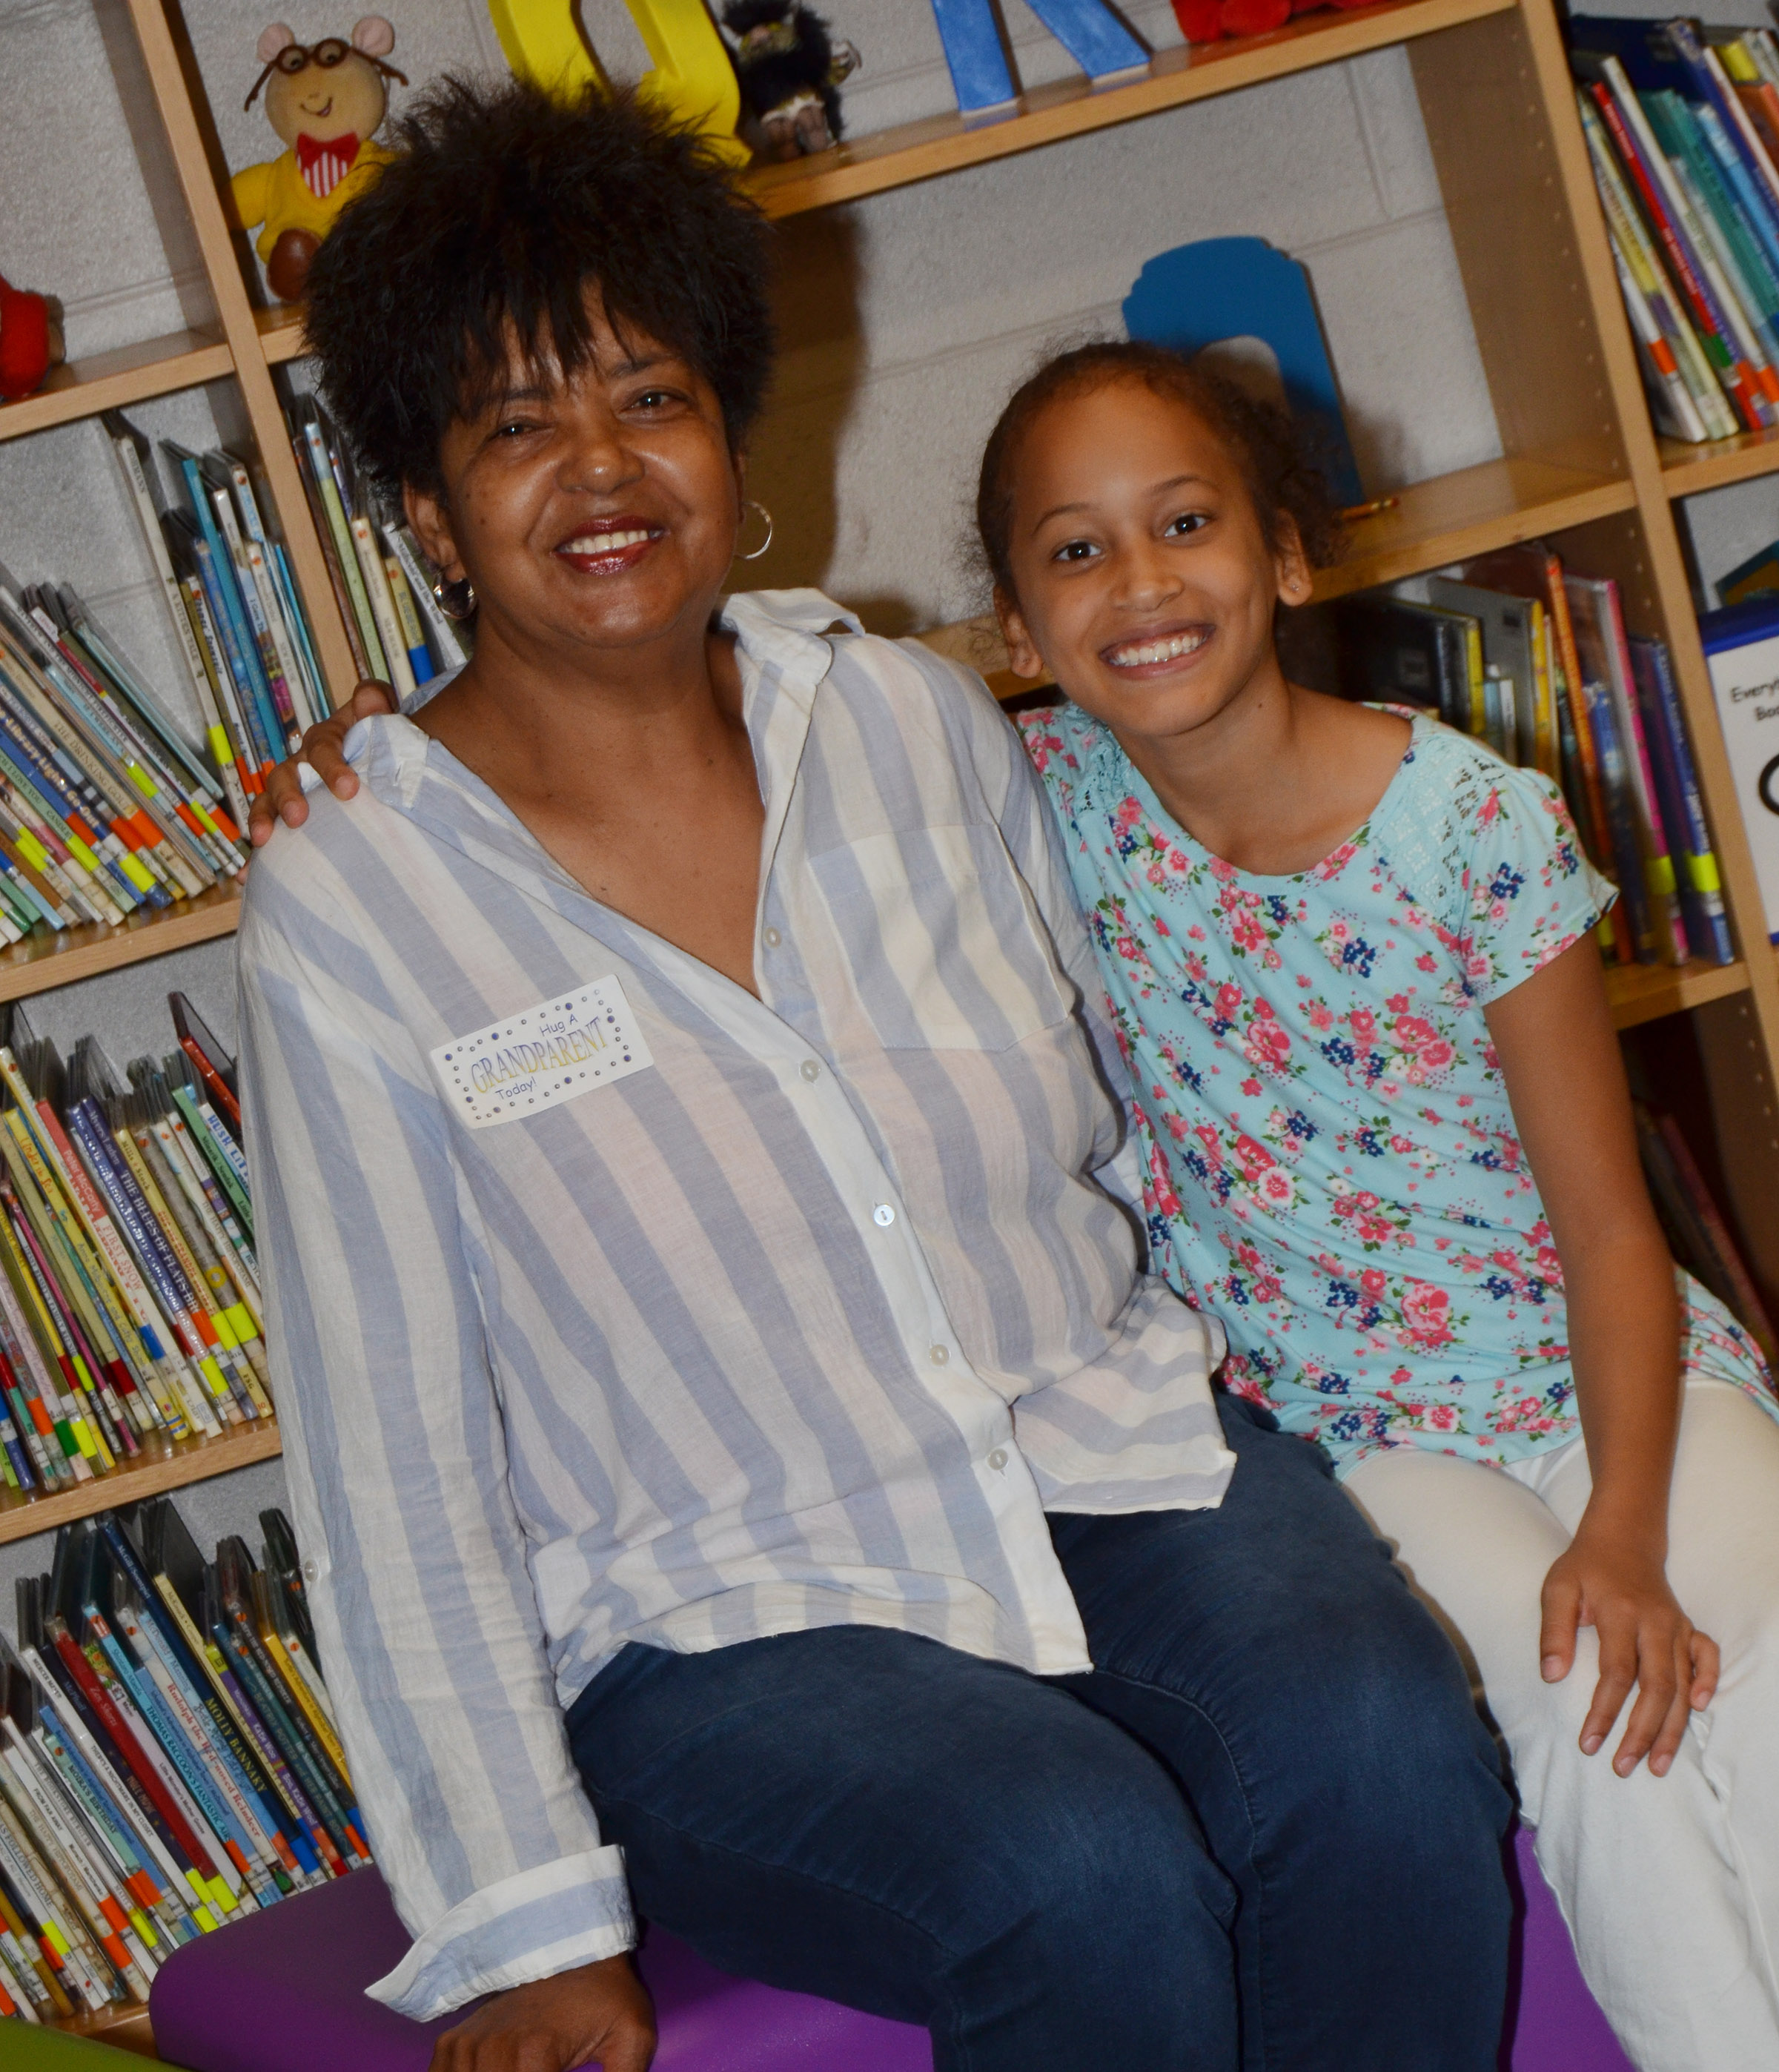 CES third-grader Yazlyn Sutton smiles for a photo with her grandmother.